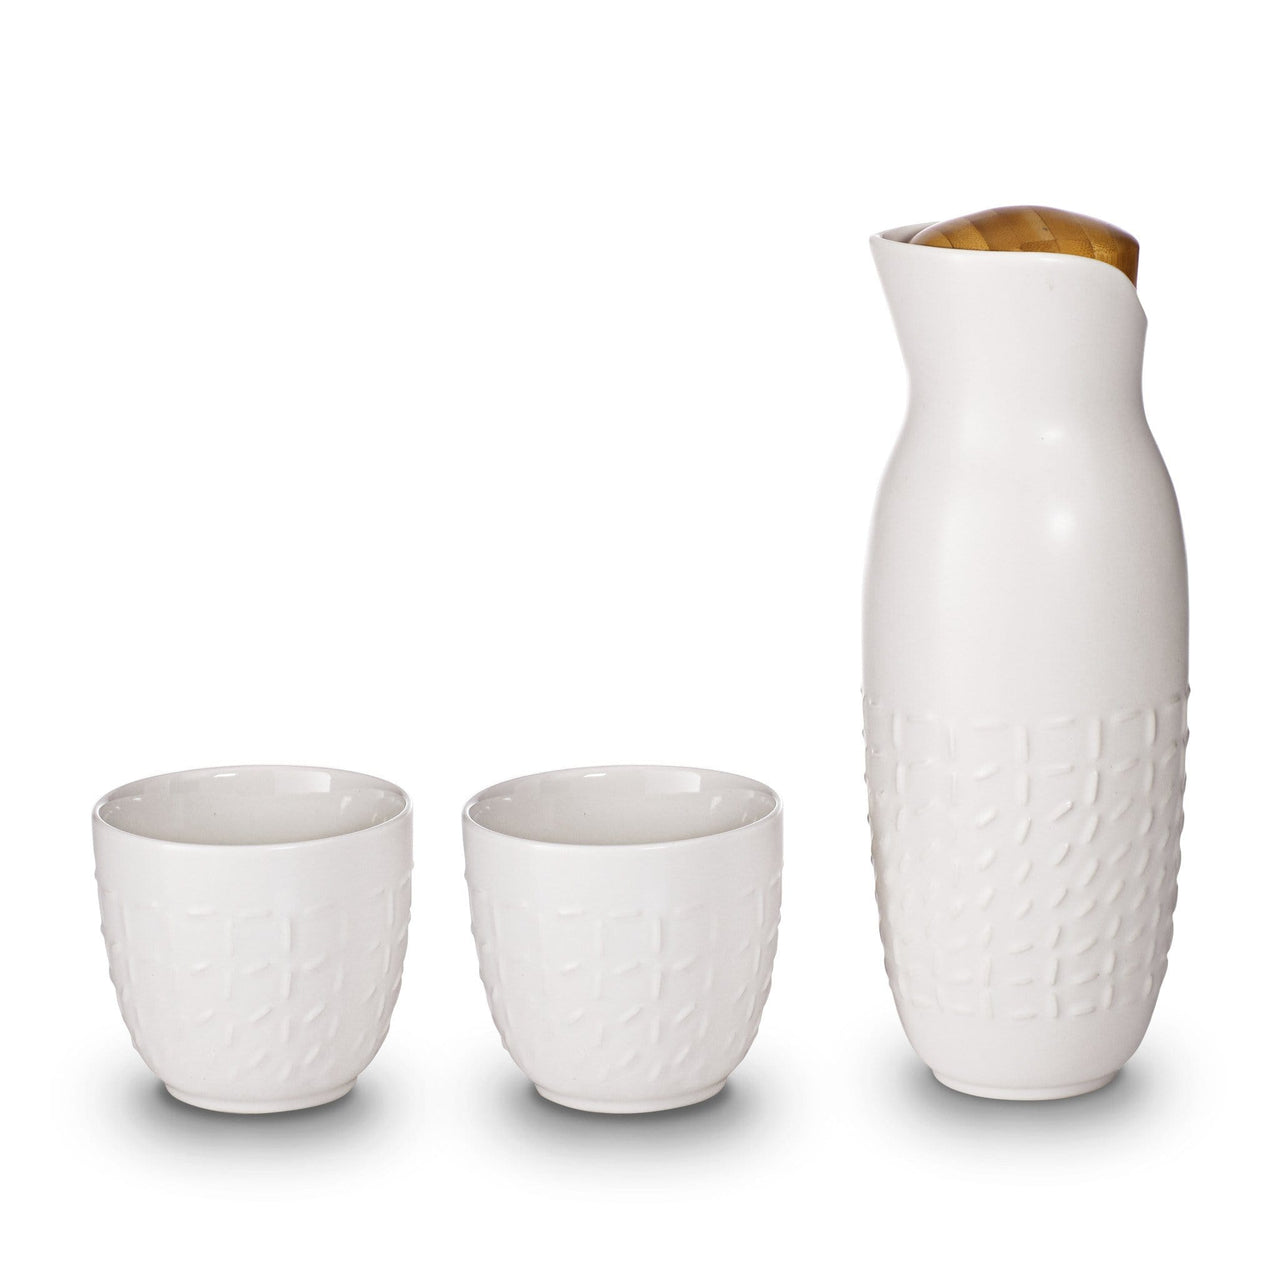 Acera Liven Coffee & Tea Accessories White Footprint Carafe Without Handles Set